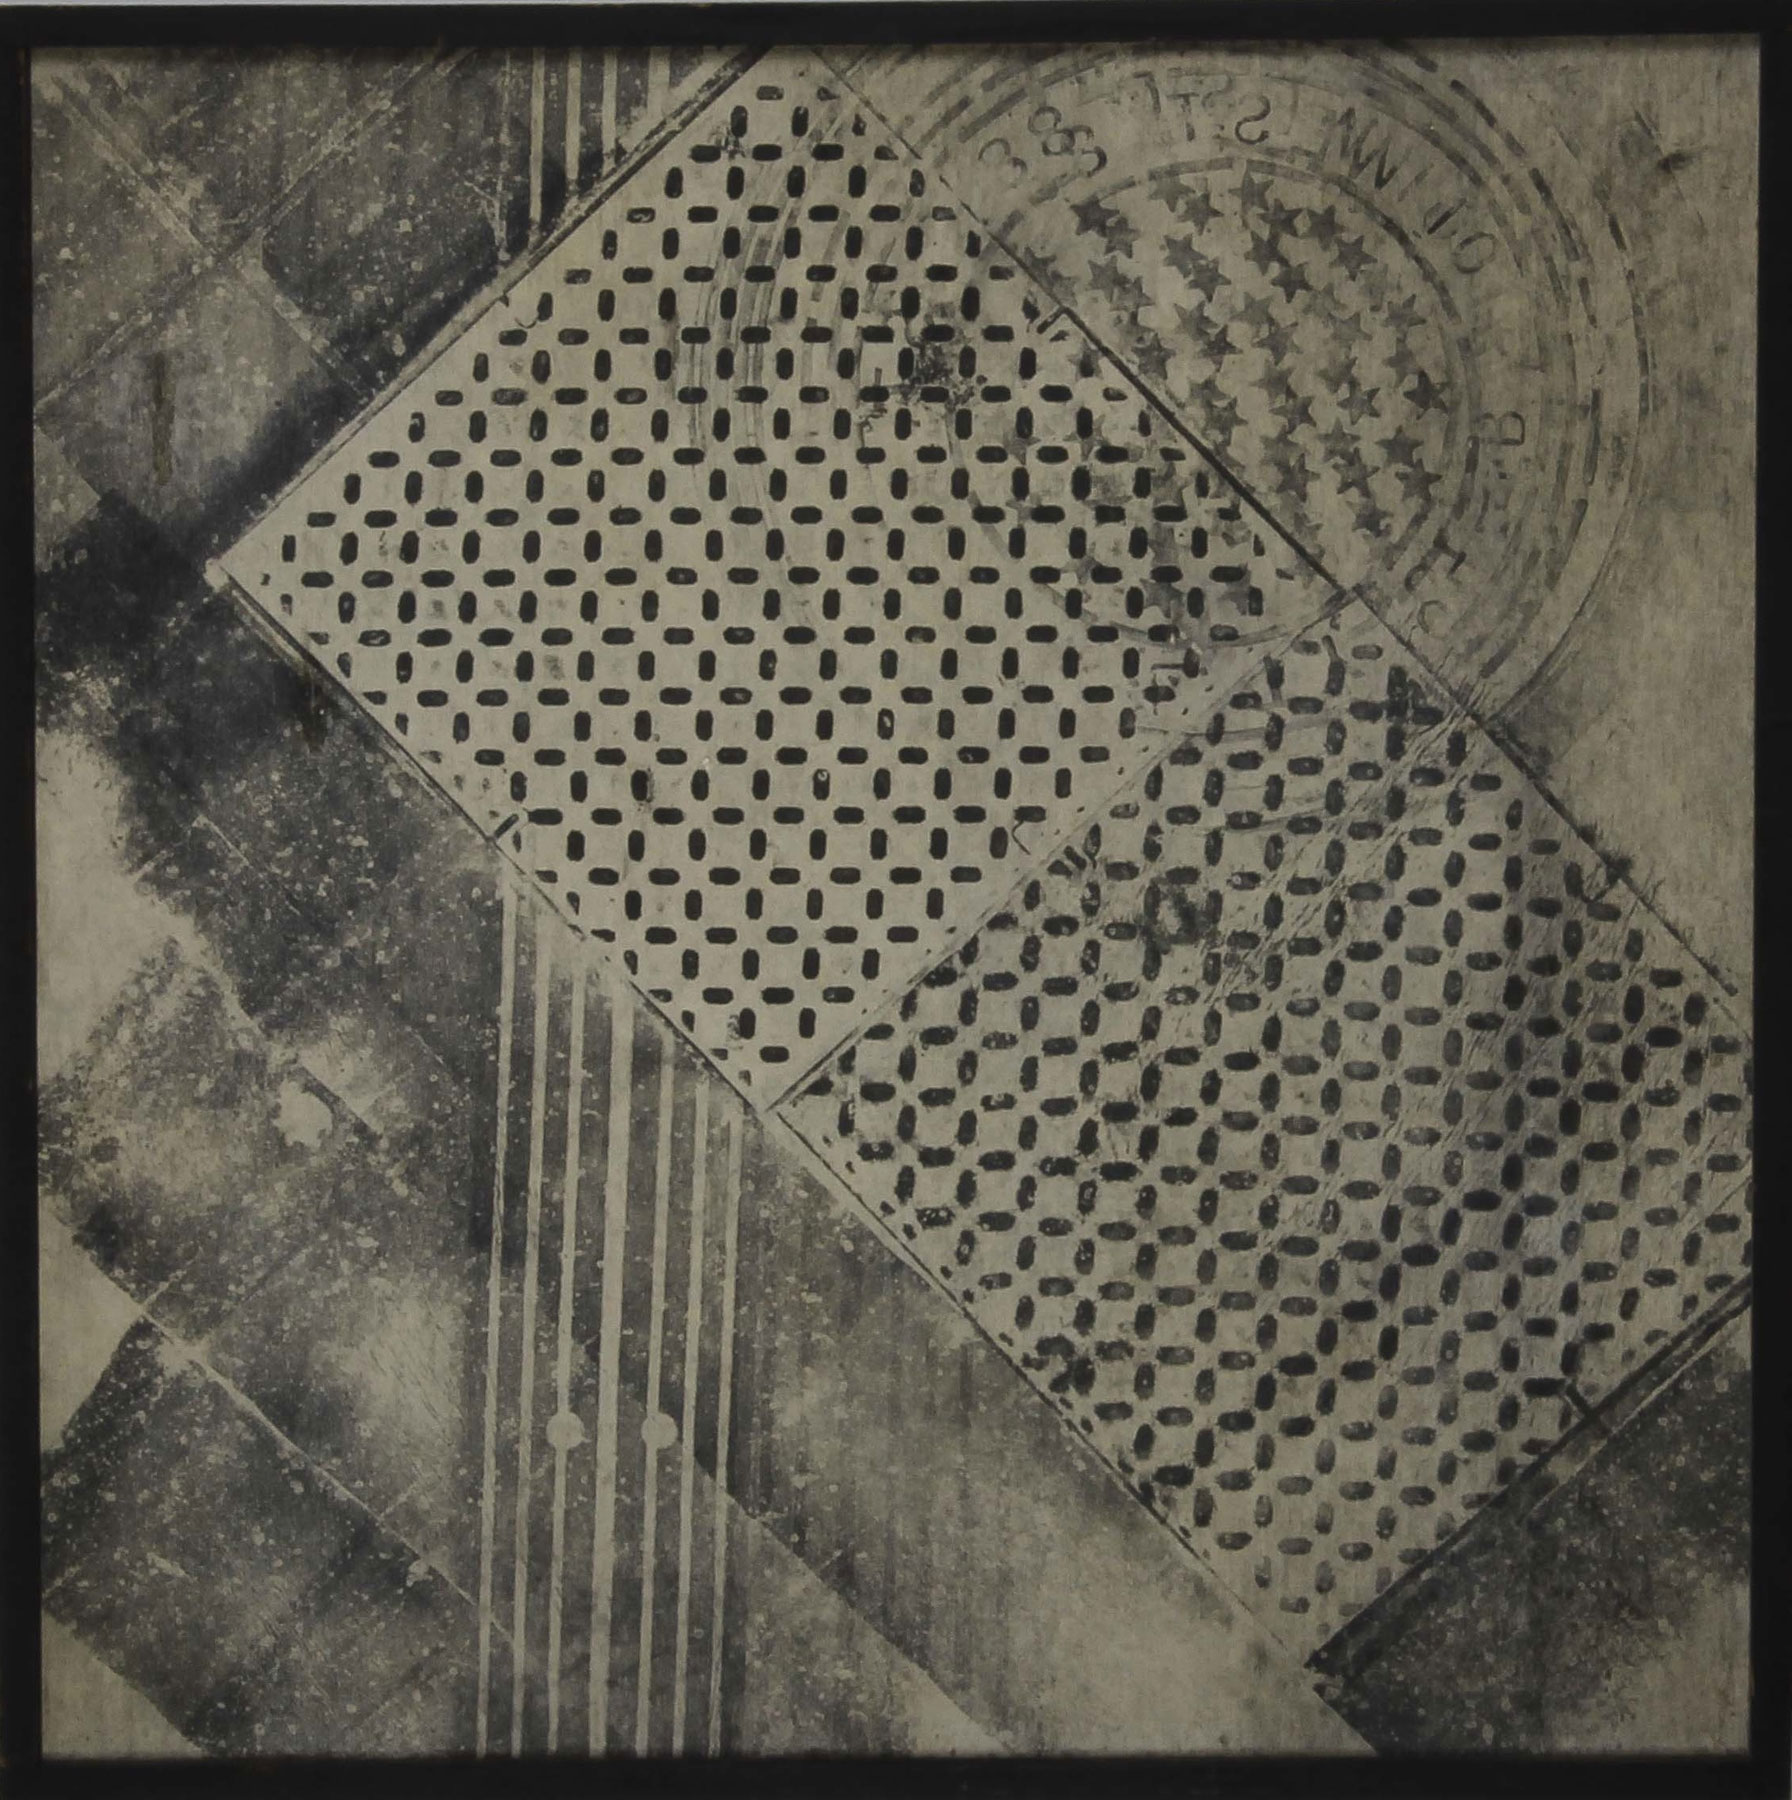 Sari Dienes, Tred Squares, c. 1953–55, Ink on webril, 36 x 36 inches. Courtesy of The Sari Dienes Foundation, Pomona, NY. © Sari Dienes  Foundation/ Licensed by VAGA, New York, NY.